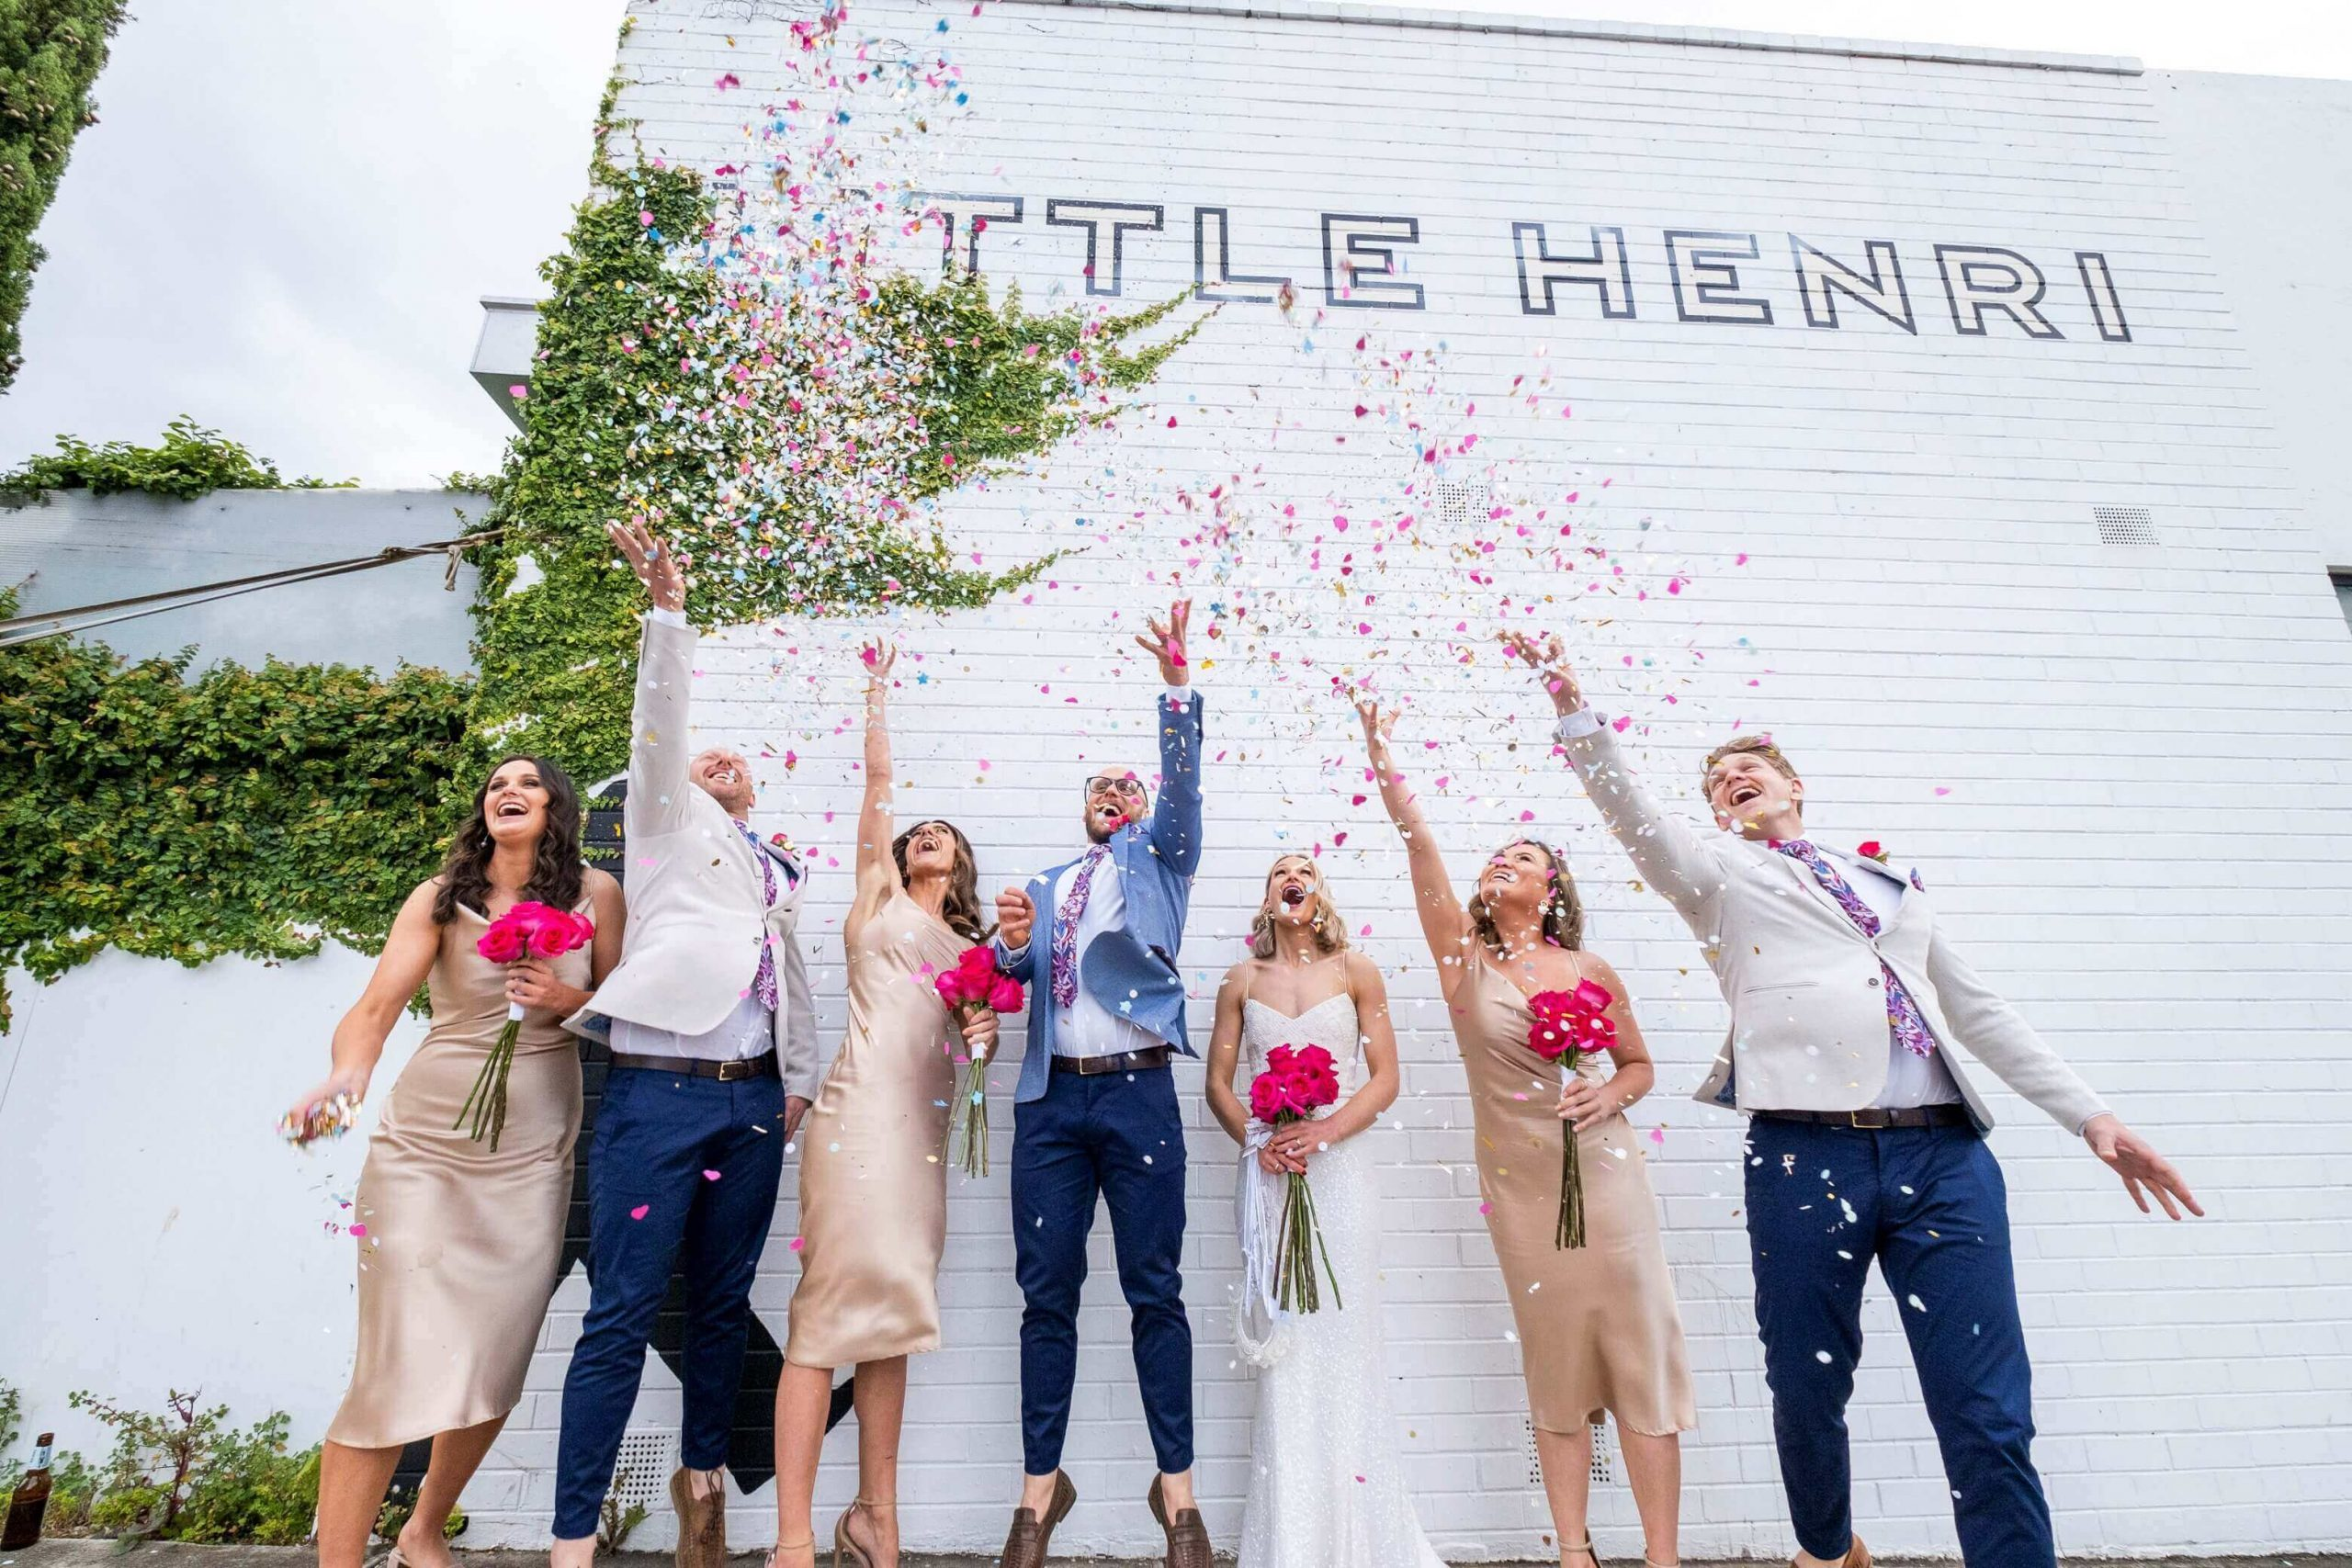 Ryleigh-and-Dylan-bridal-party-1-1-1-scaled